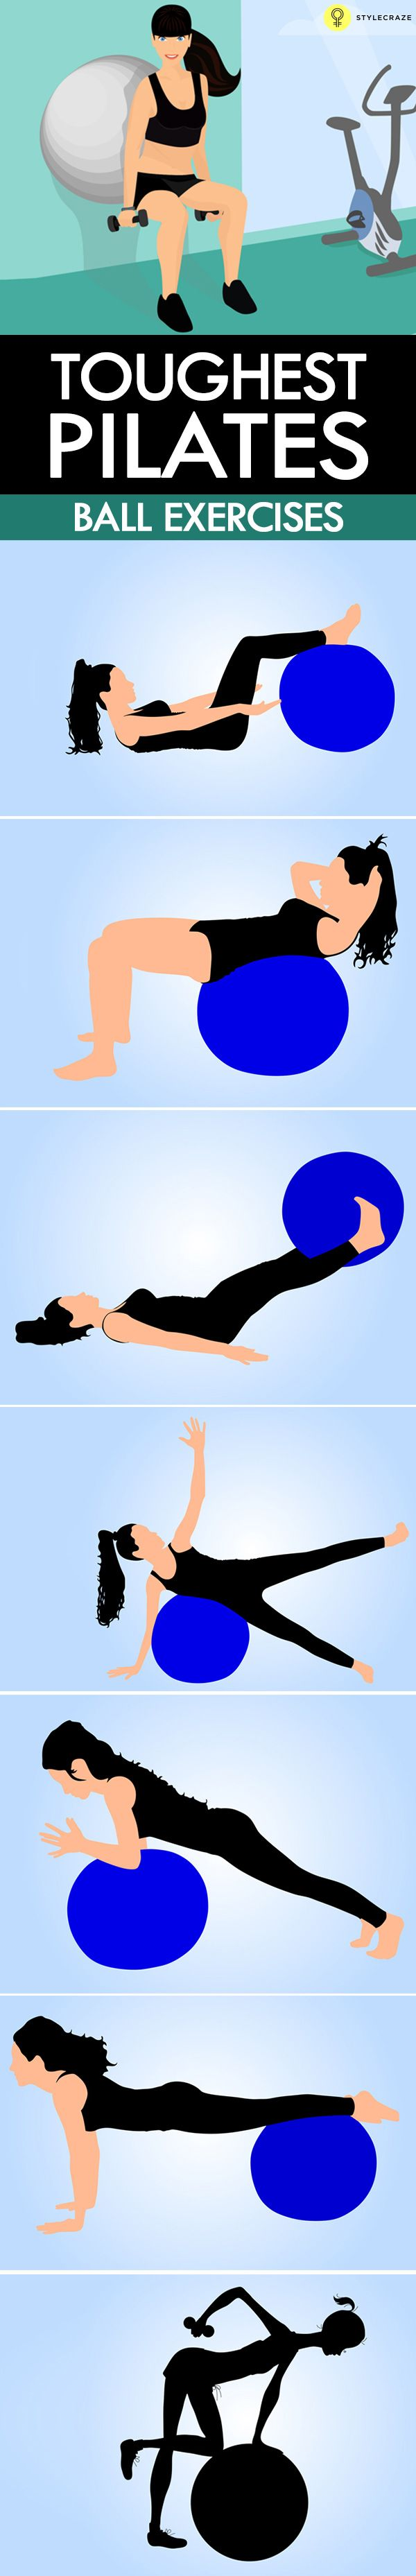 10 Best Pilates Ball Exercises To Stay Fit